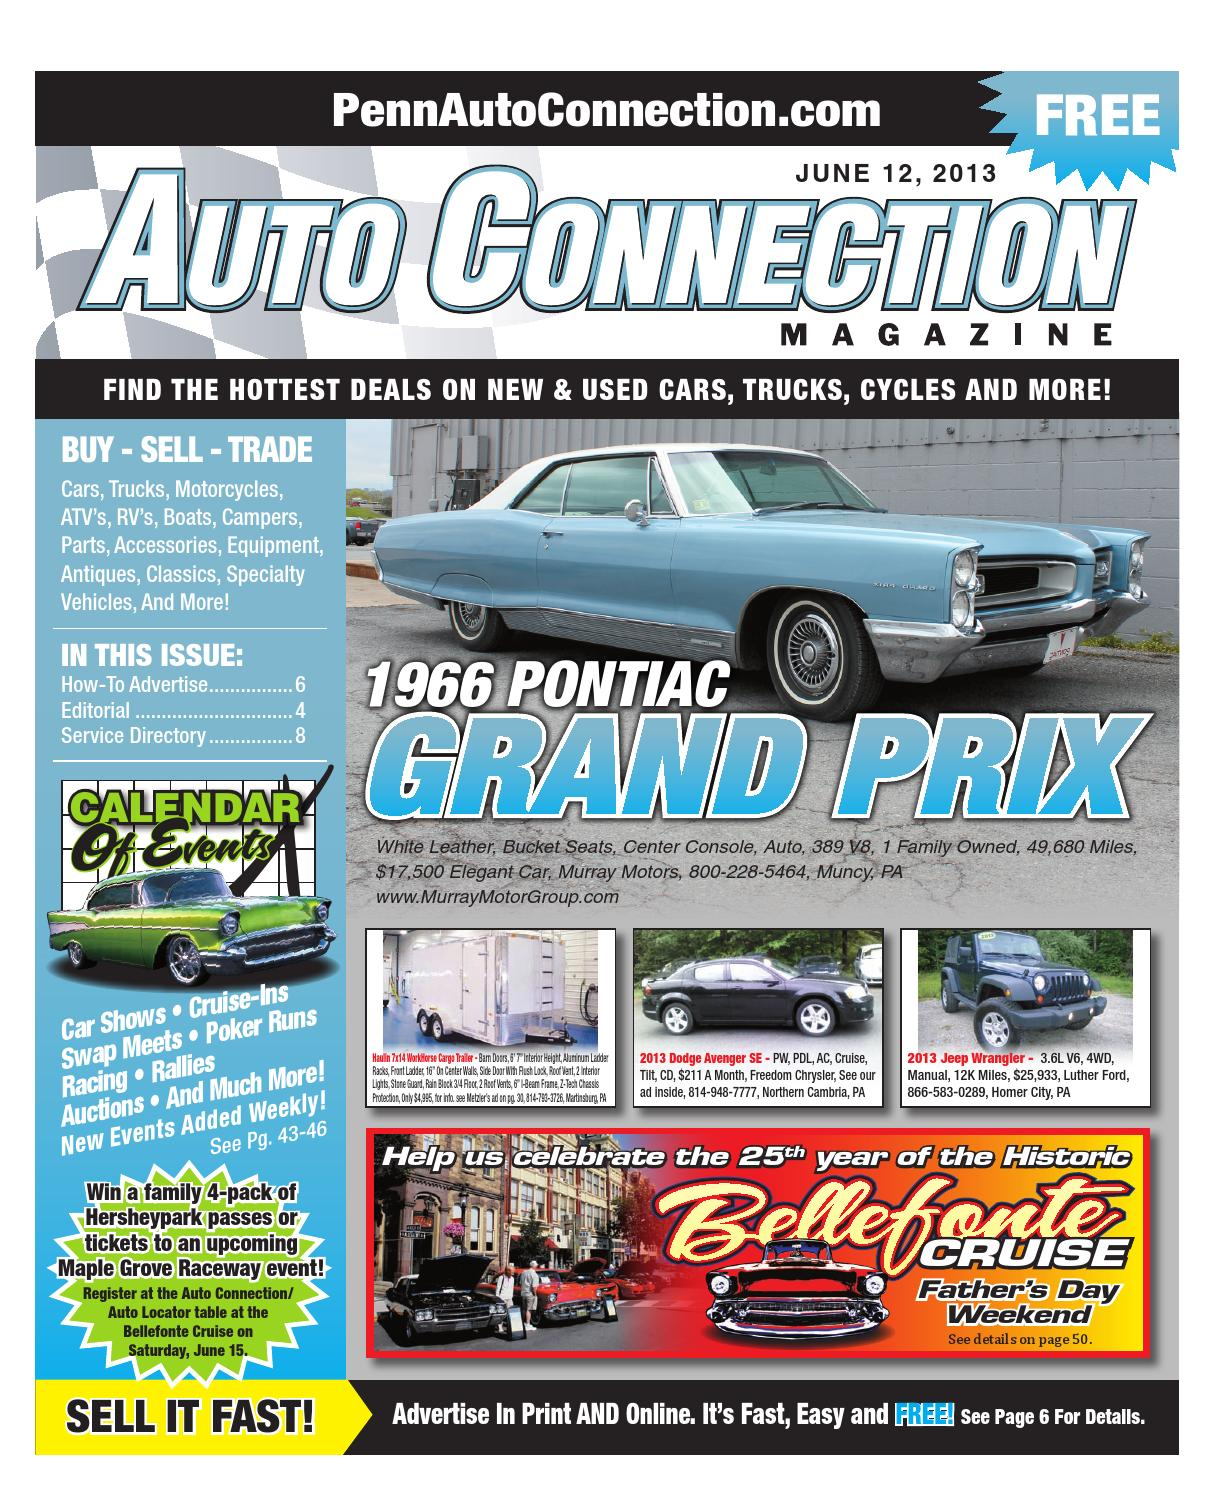 06 12 13 auto connection magazine by auto connection for Murray motor company muncy pa